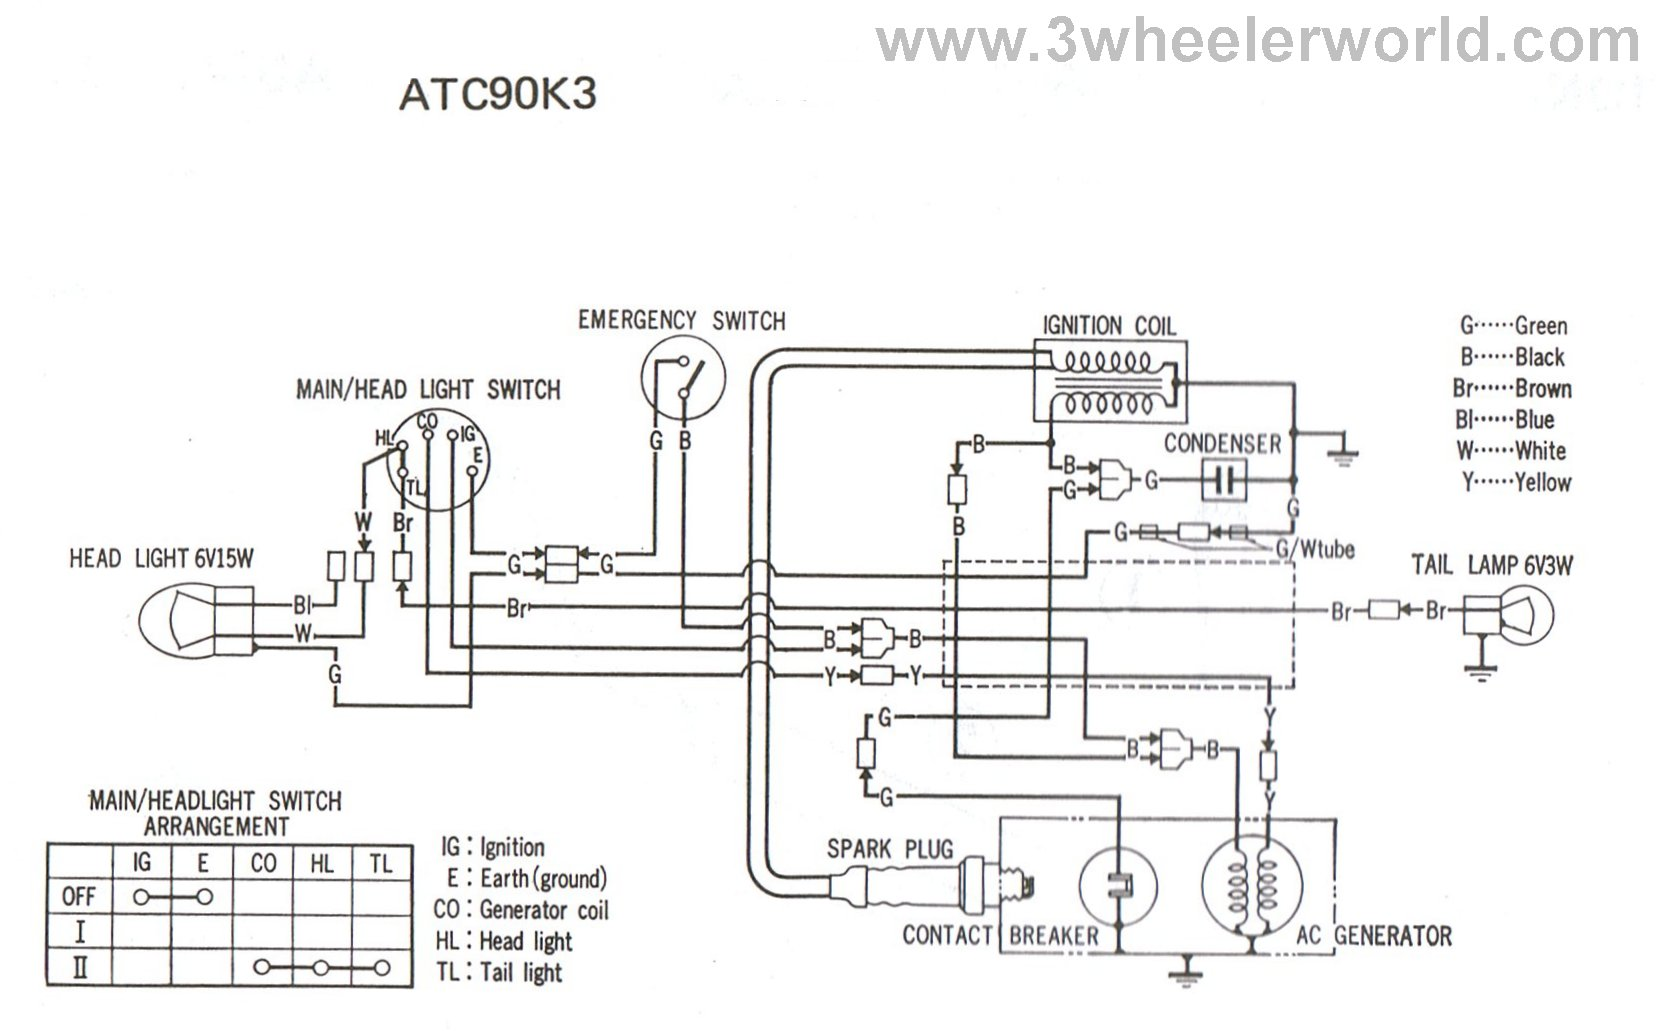 1995 polaris scrambler 400 4x4 wiring diagram - wiring diagram 1998 polaris sportsman wiring diagram